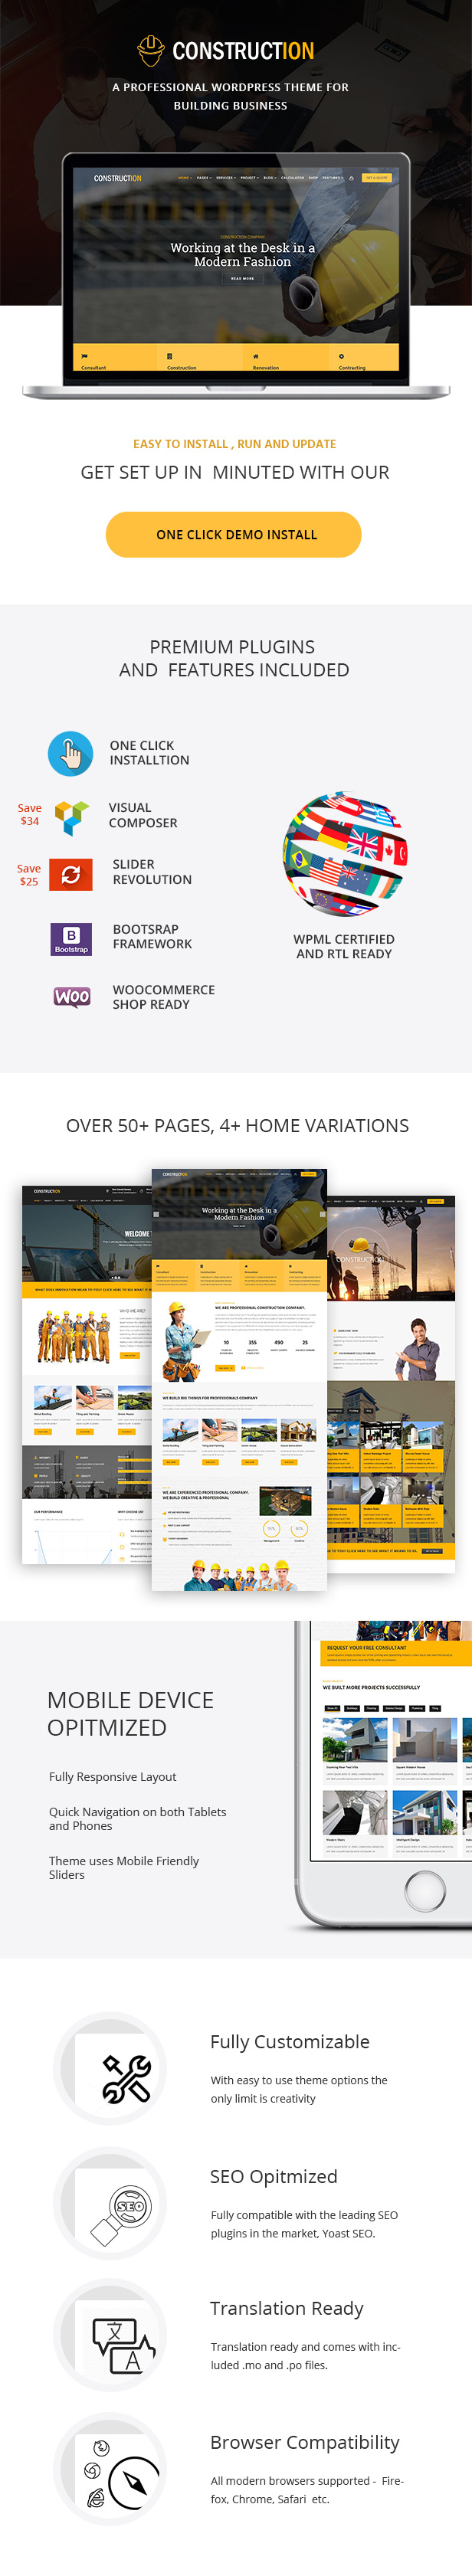 Construction - Building & Renovation WordPress Theme - 3